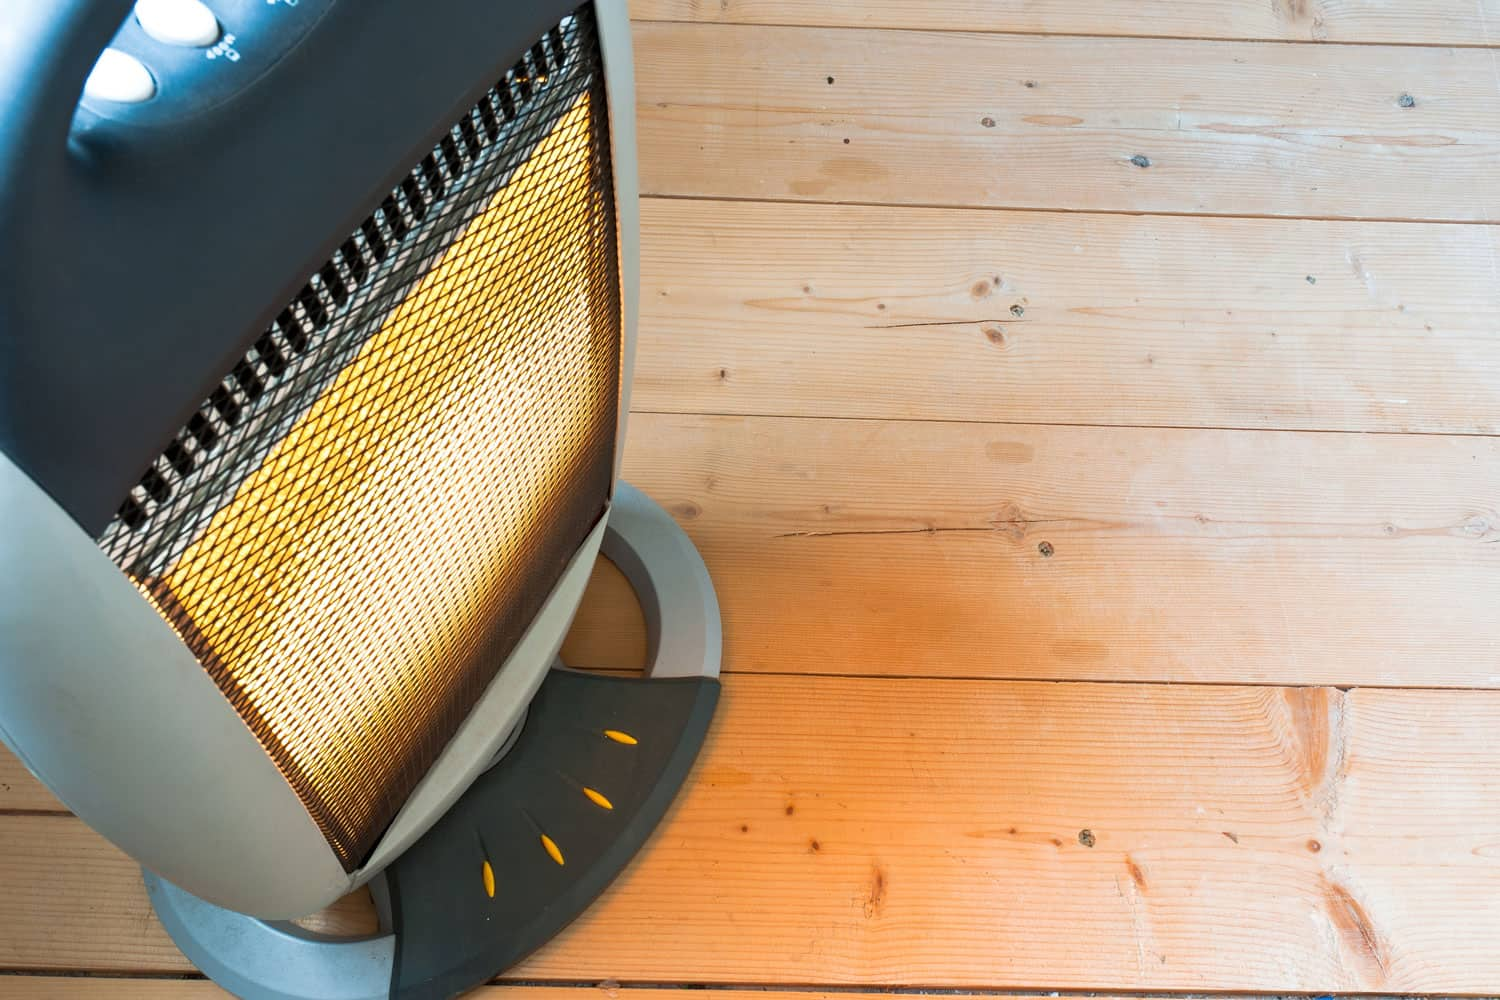 A space heater inside a laundry room